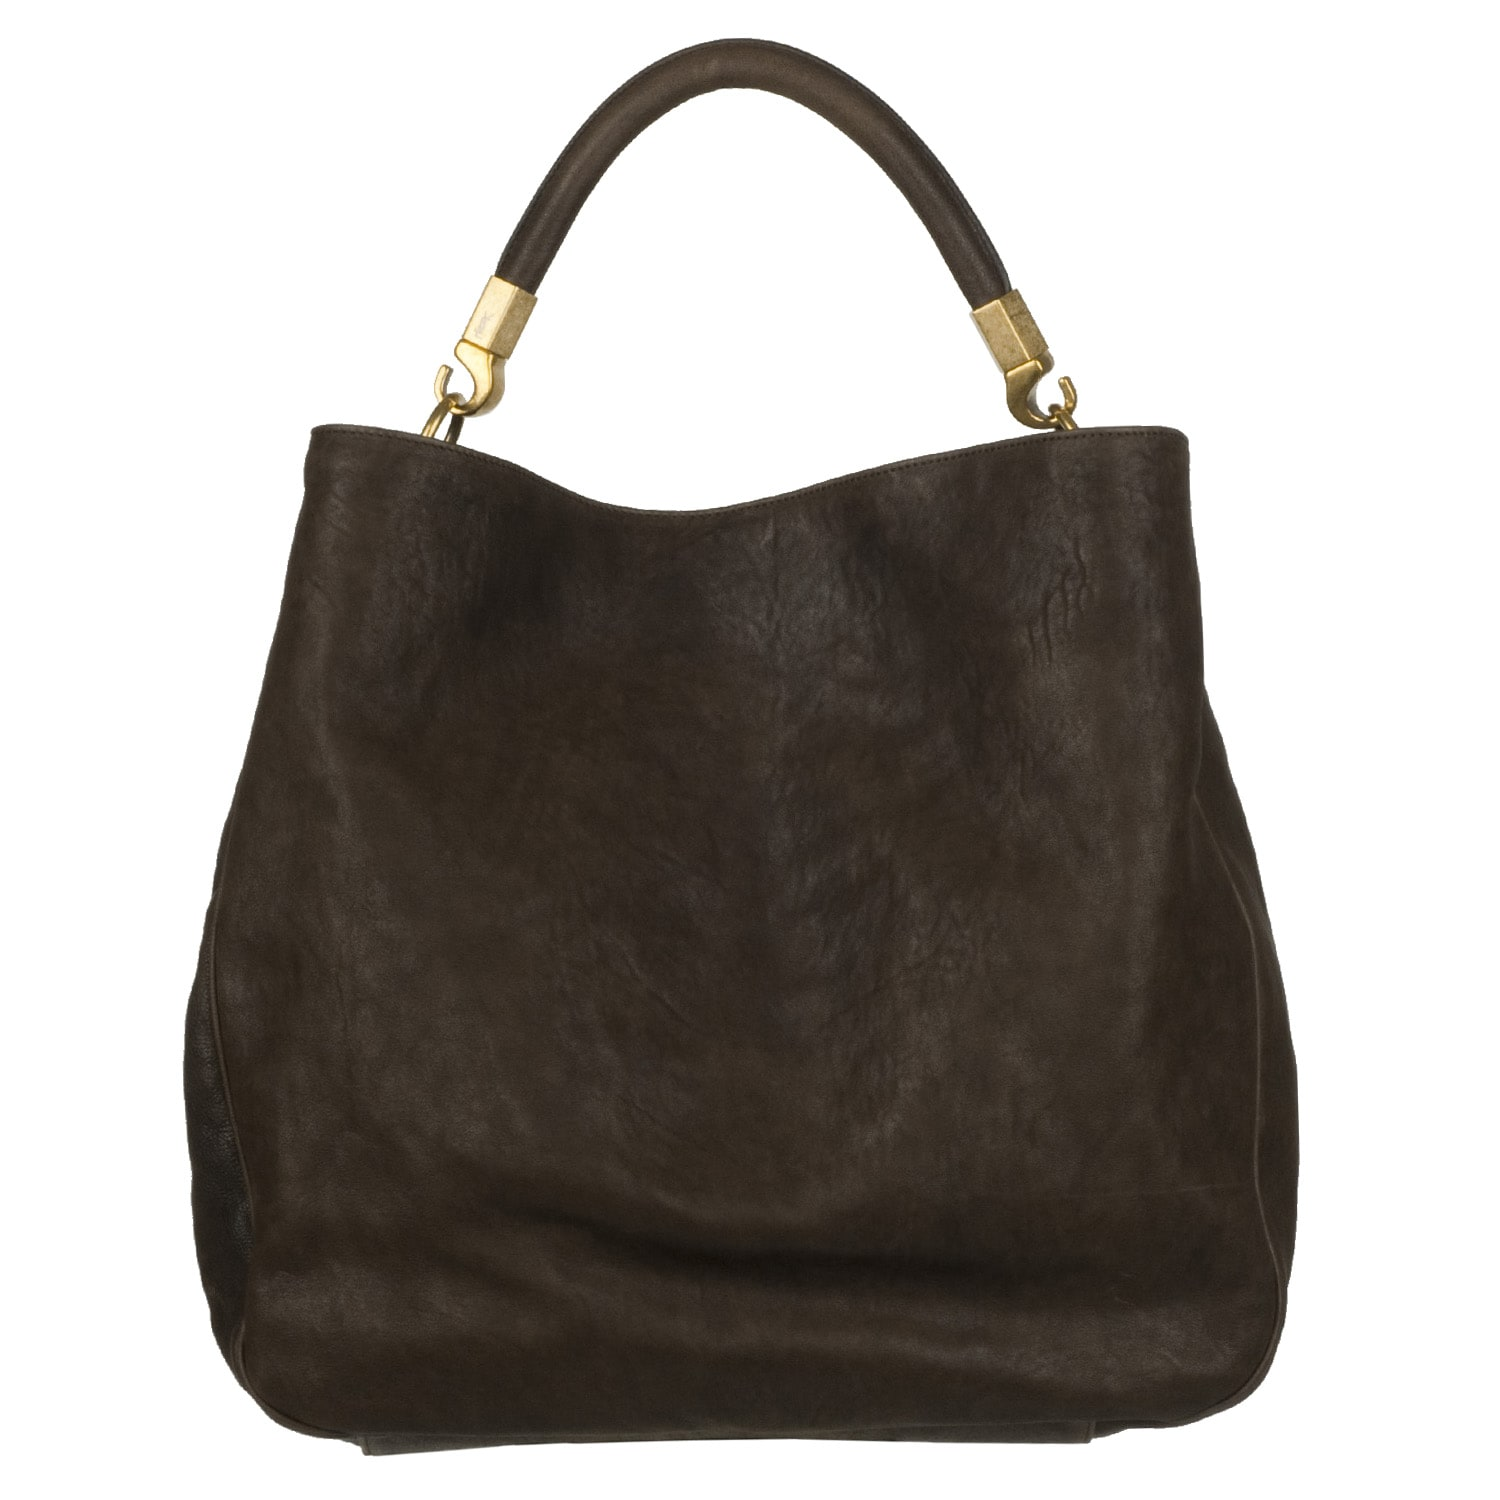 Yves Saint Laurent 'Roady Ranch' Brown Leather Hobo Bag